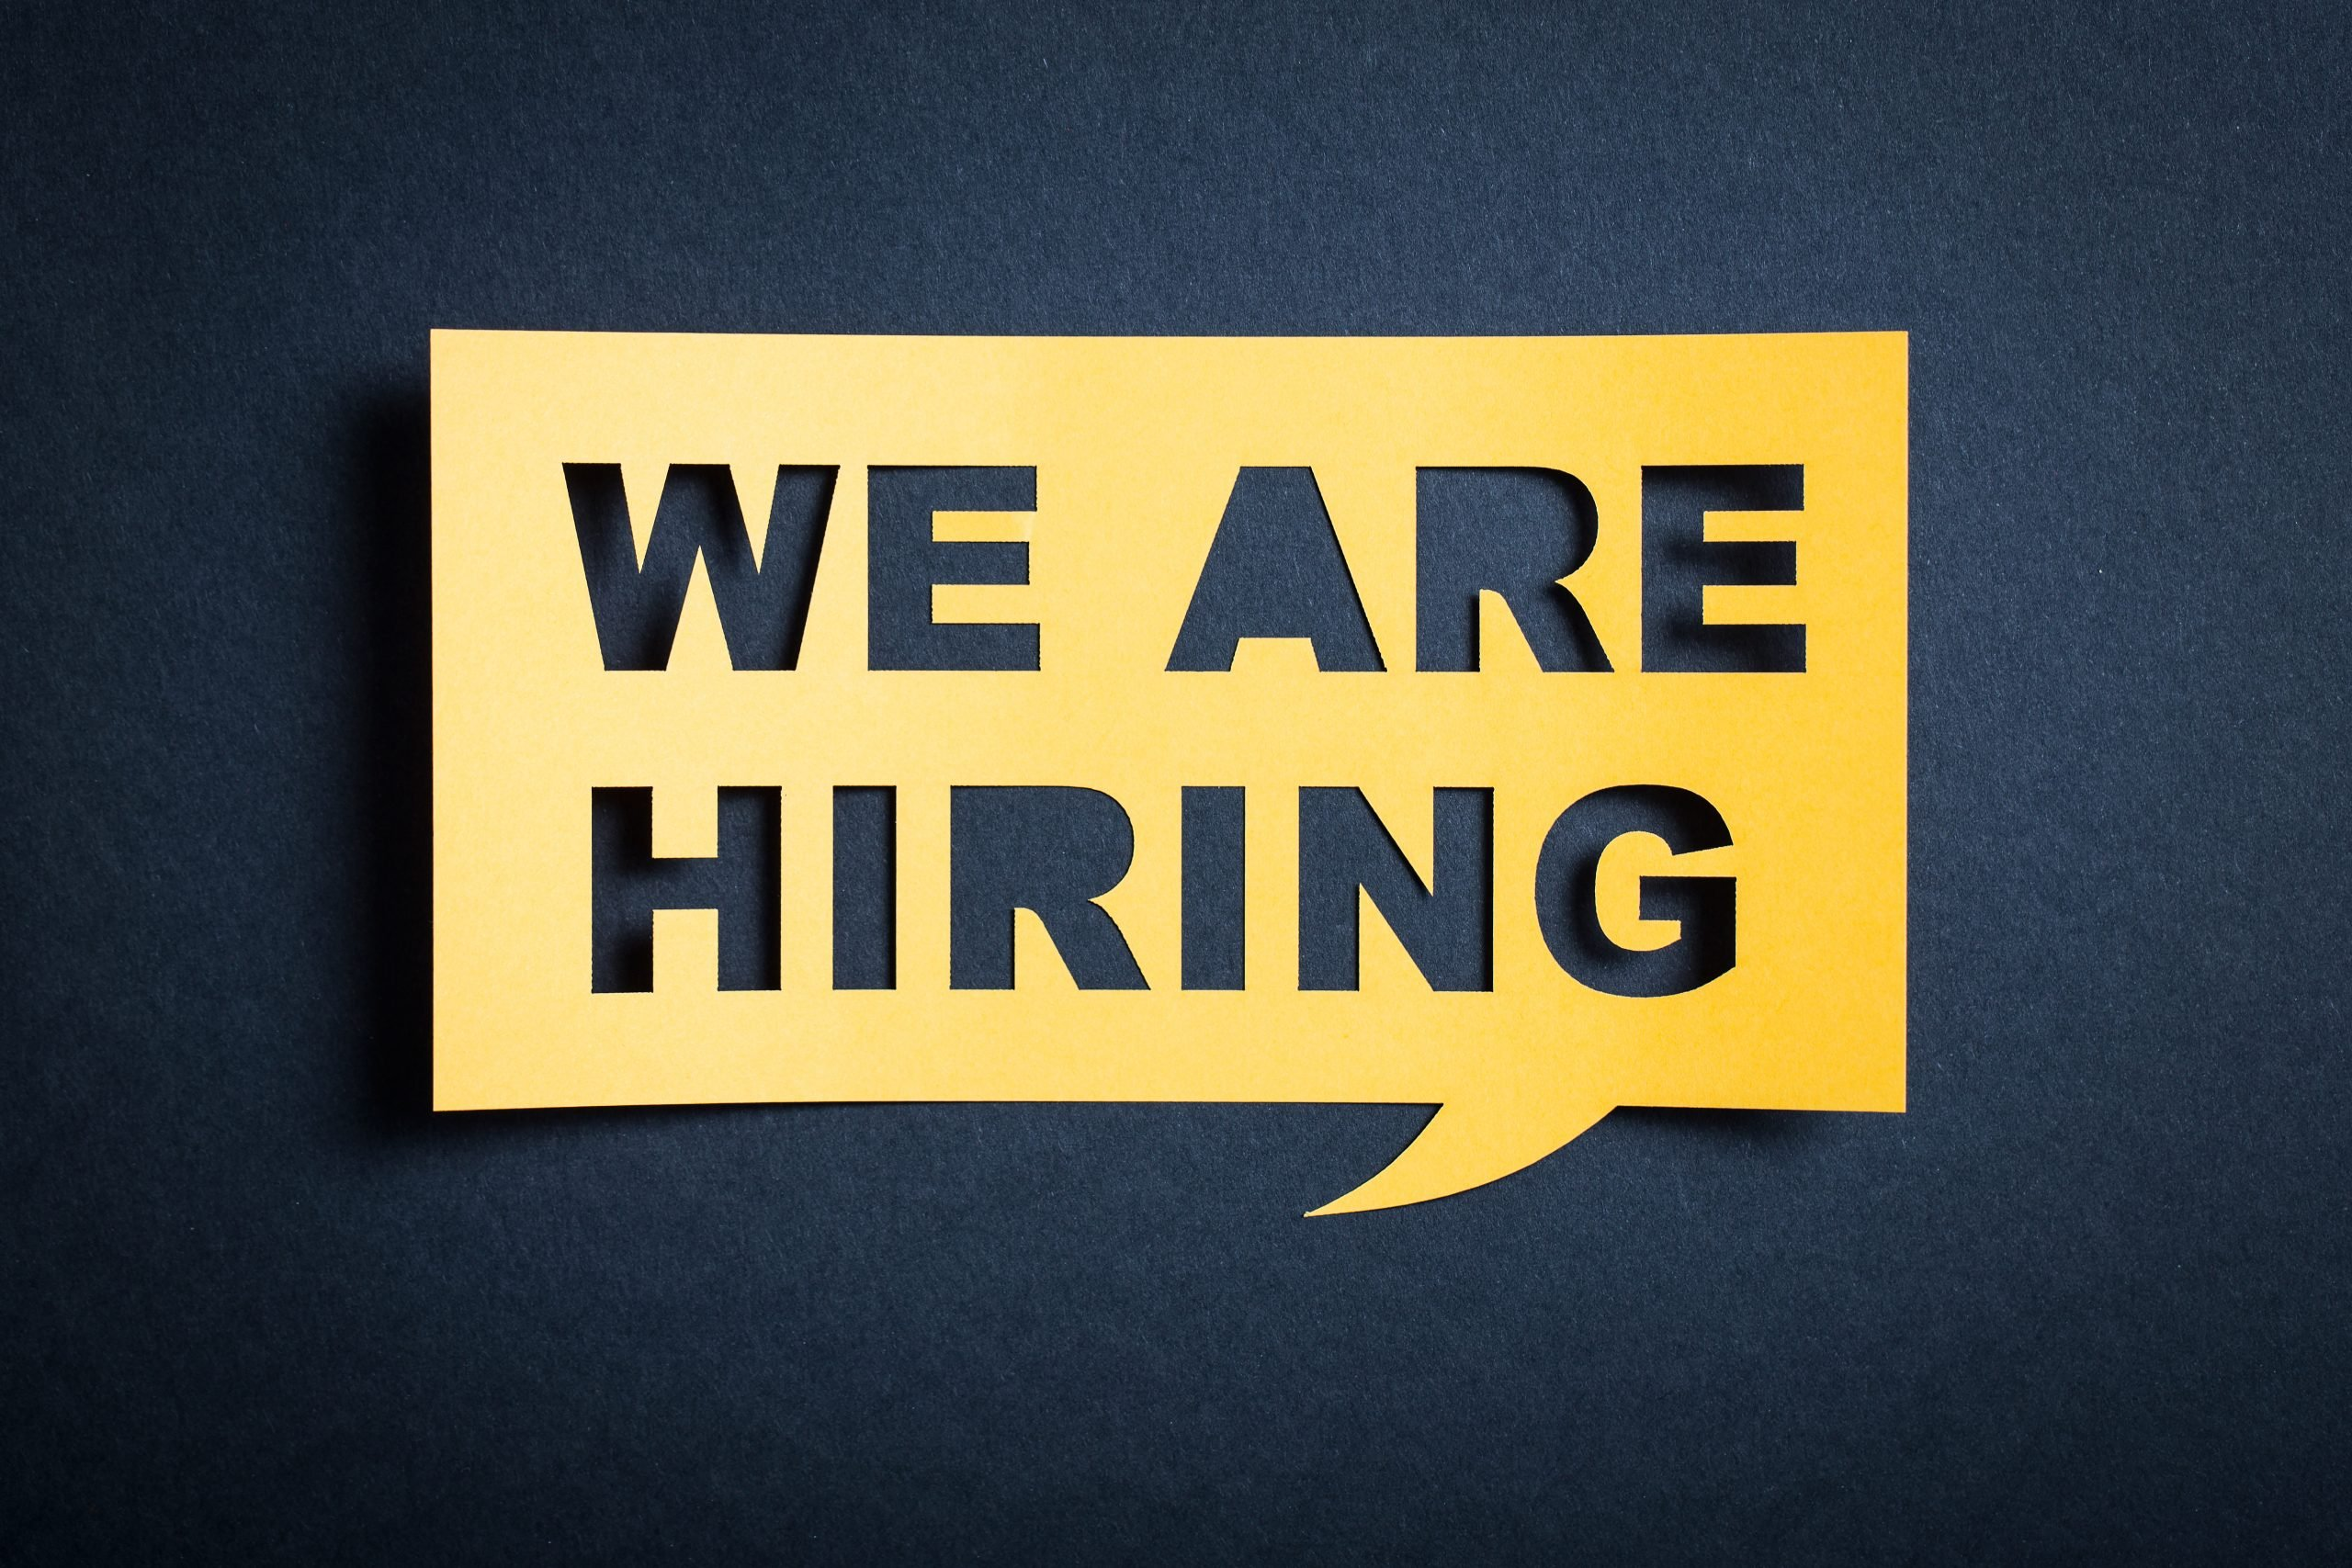 Square yellow speech bubble on a dark background saying we are hiring